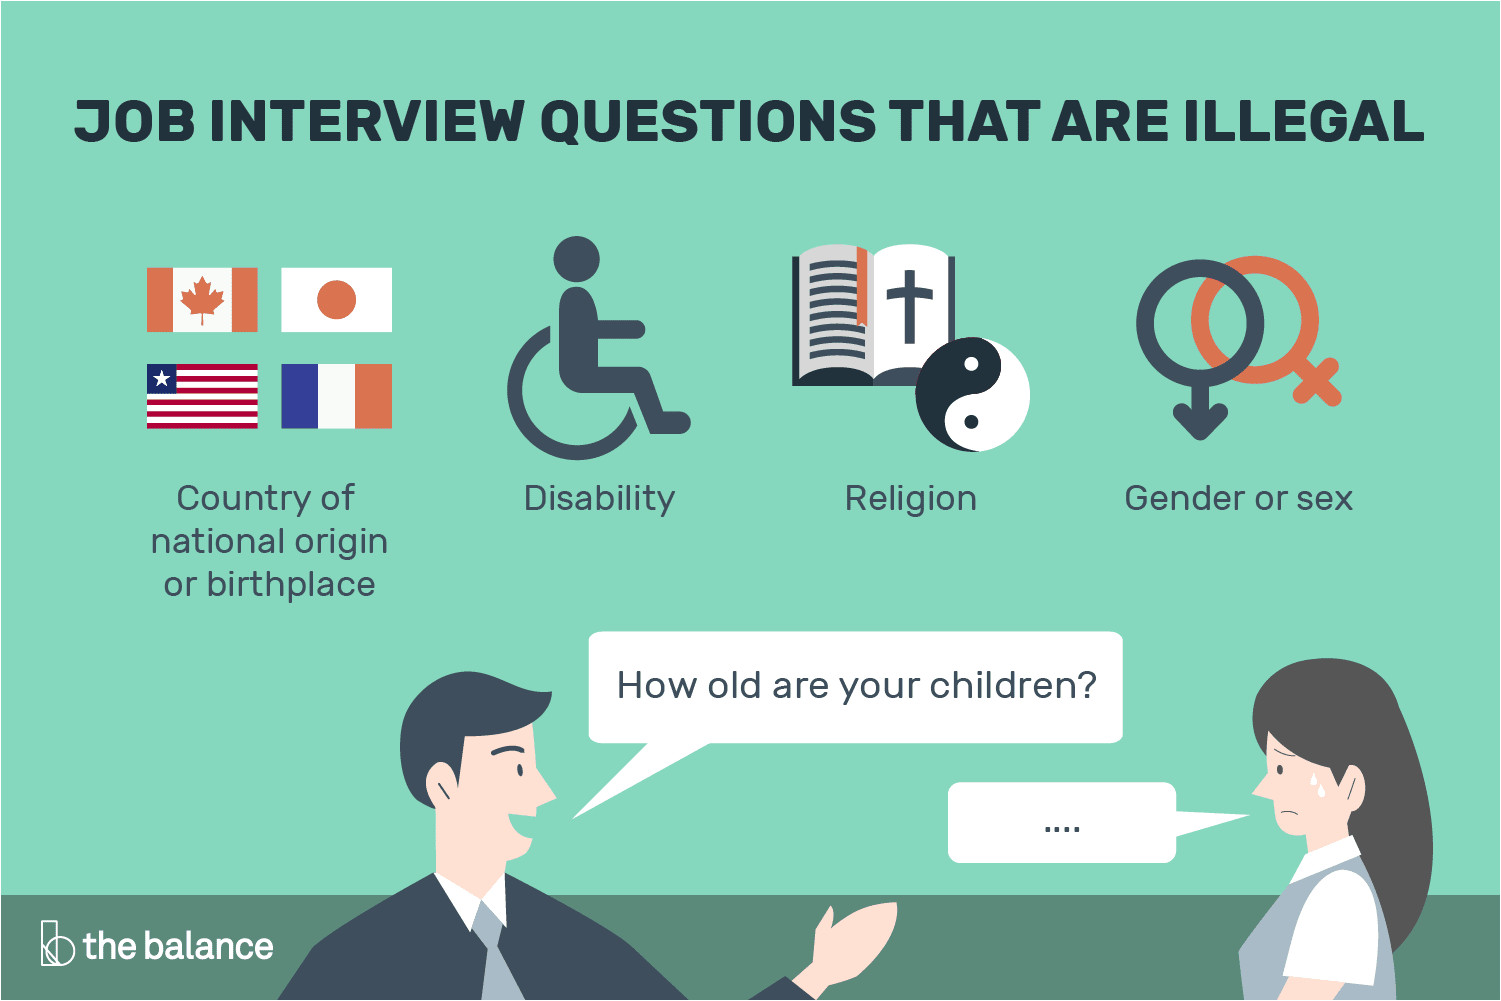 Marriage Green Card Interview Questions Questions You Should and Shouldn T ask In A Job Interview